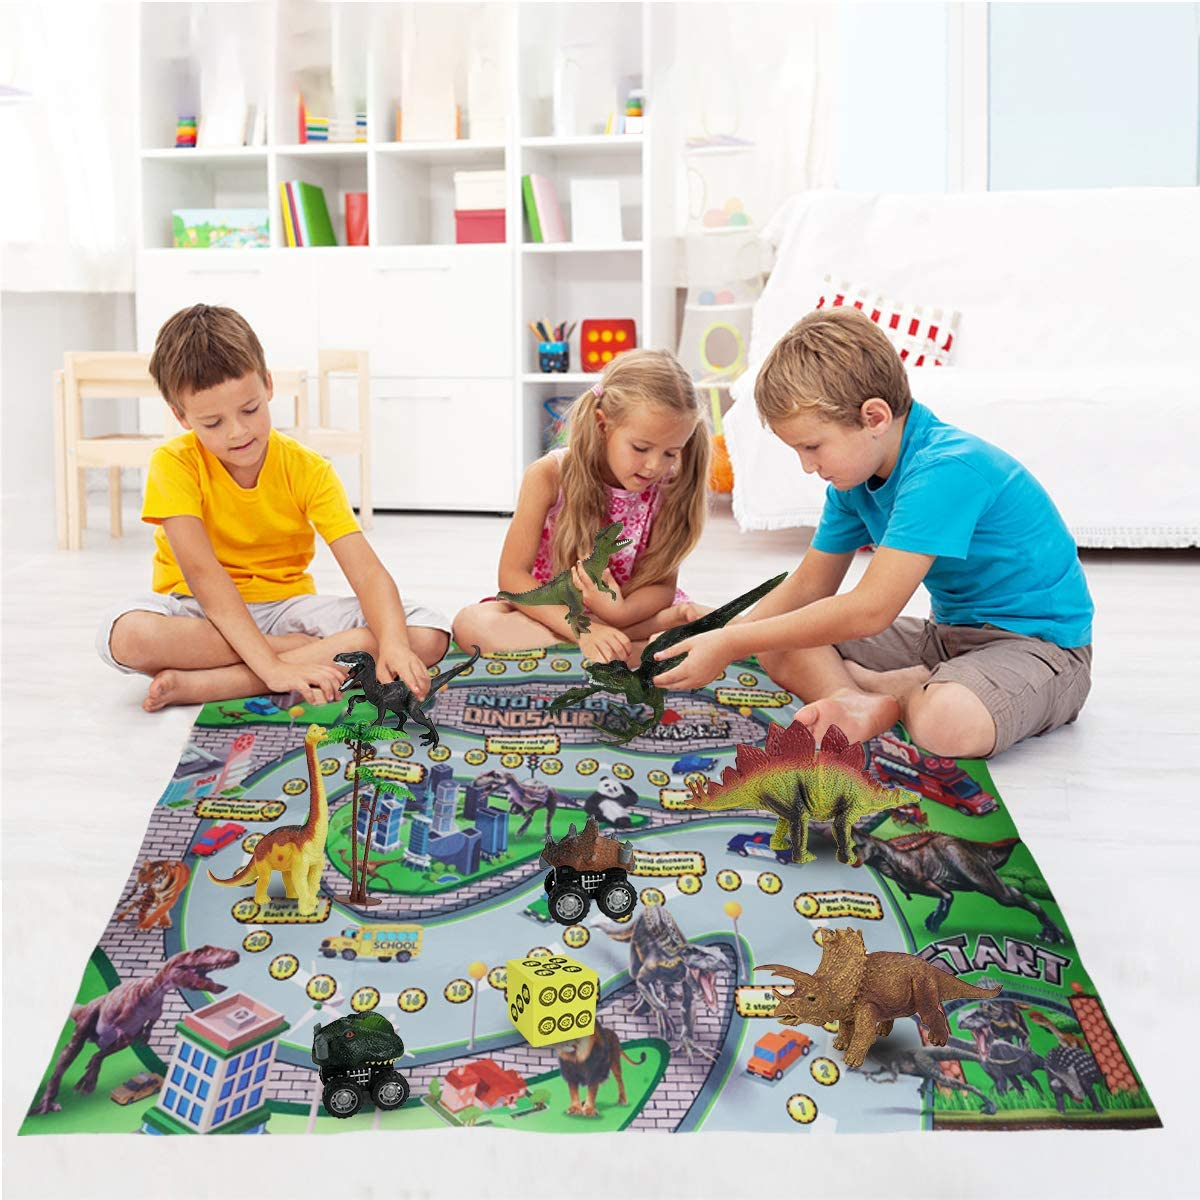 Dinosaur Play Set Pickwoo Dinosaur Toy Figure with Chase Game Play Mat Realistic Dinosaur Playset to Create a Dino World Including Dinosaur Pull Back Car /& Trees STEM Educational Carpet Indoor Outdoor